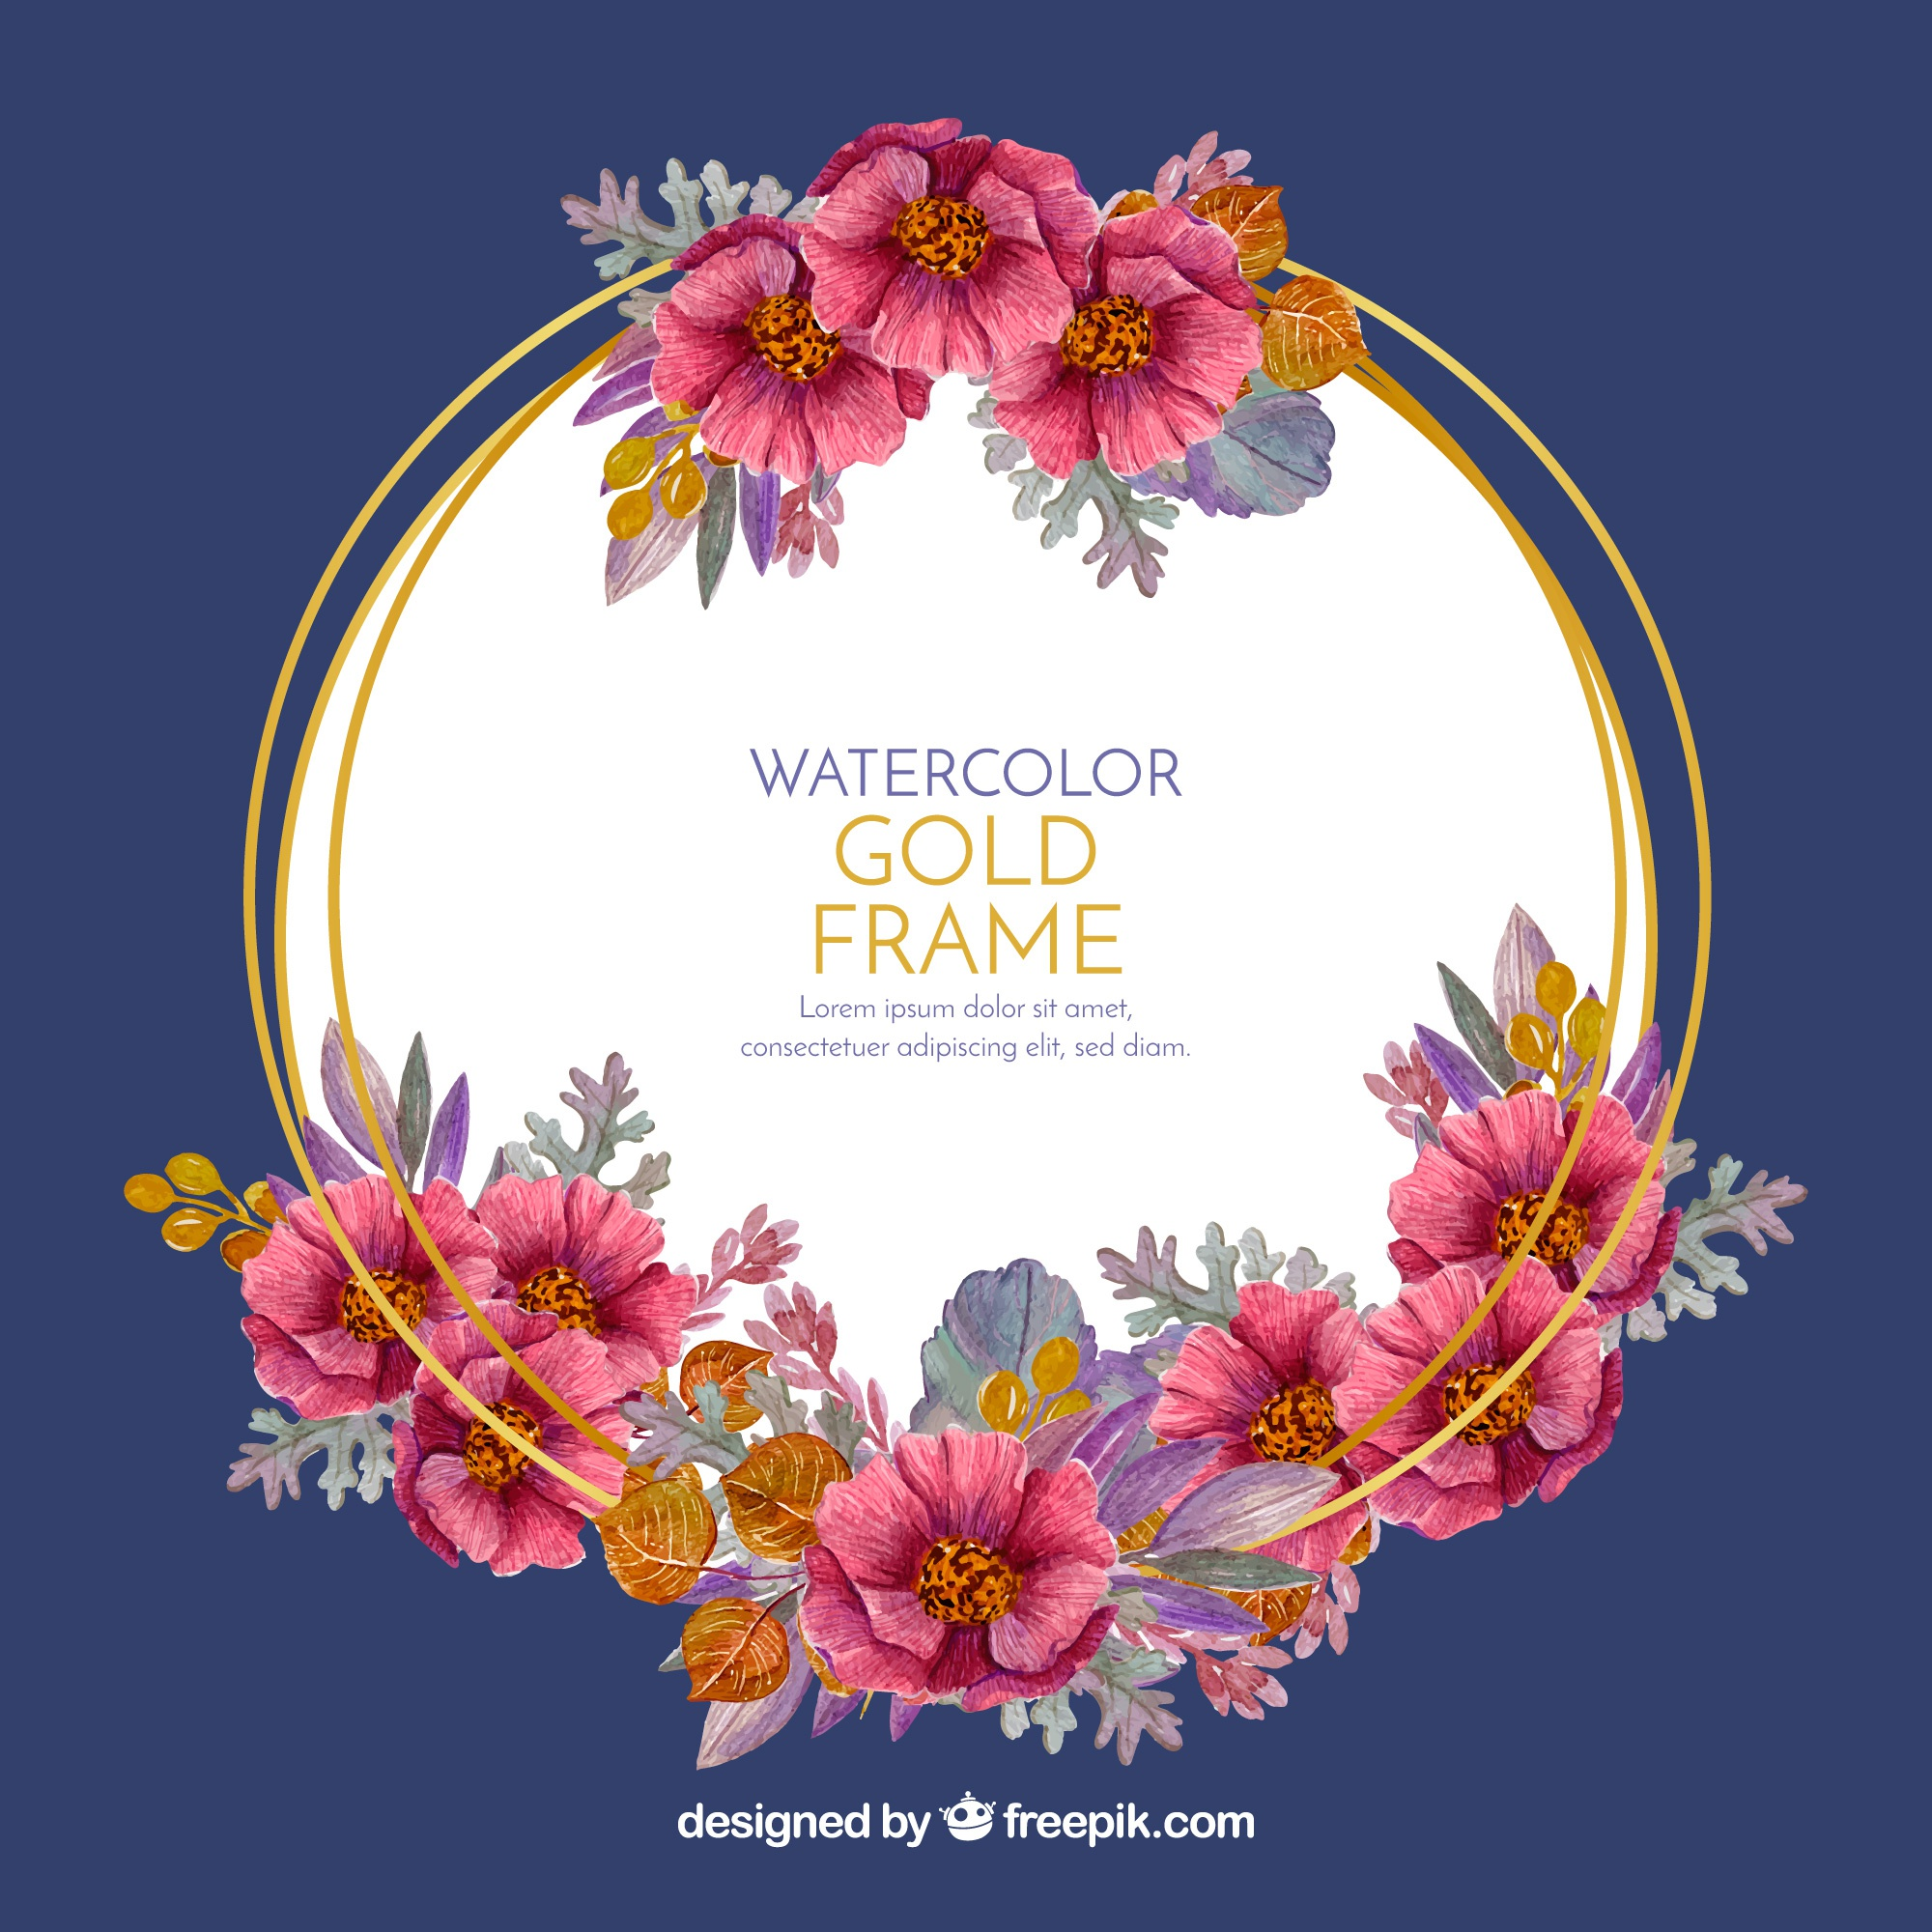 Elegant floral frame with watercolor style